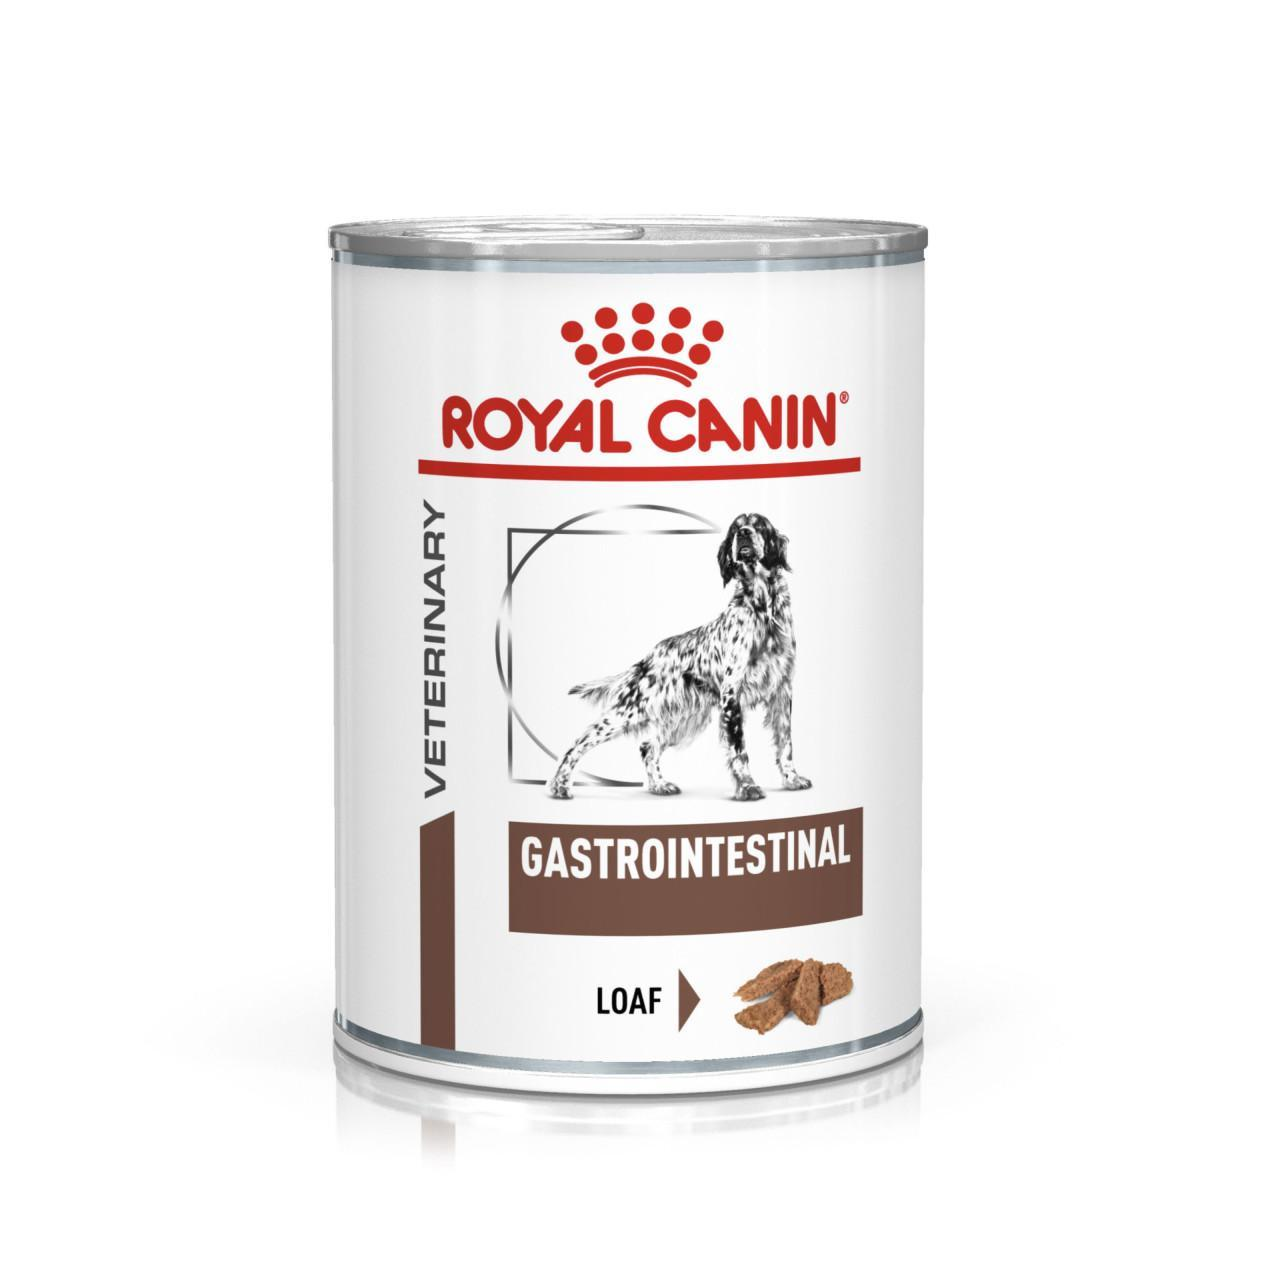 An image of Royal Canin Canine Gastro-Intestinal